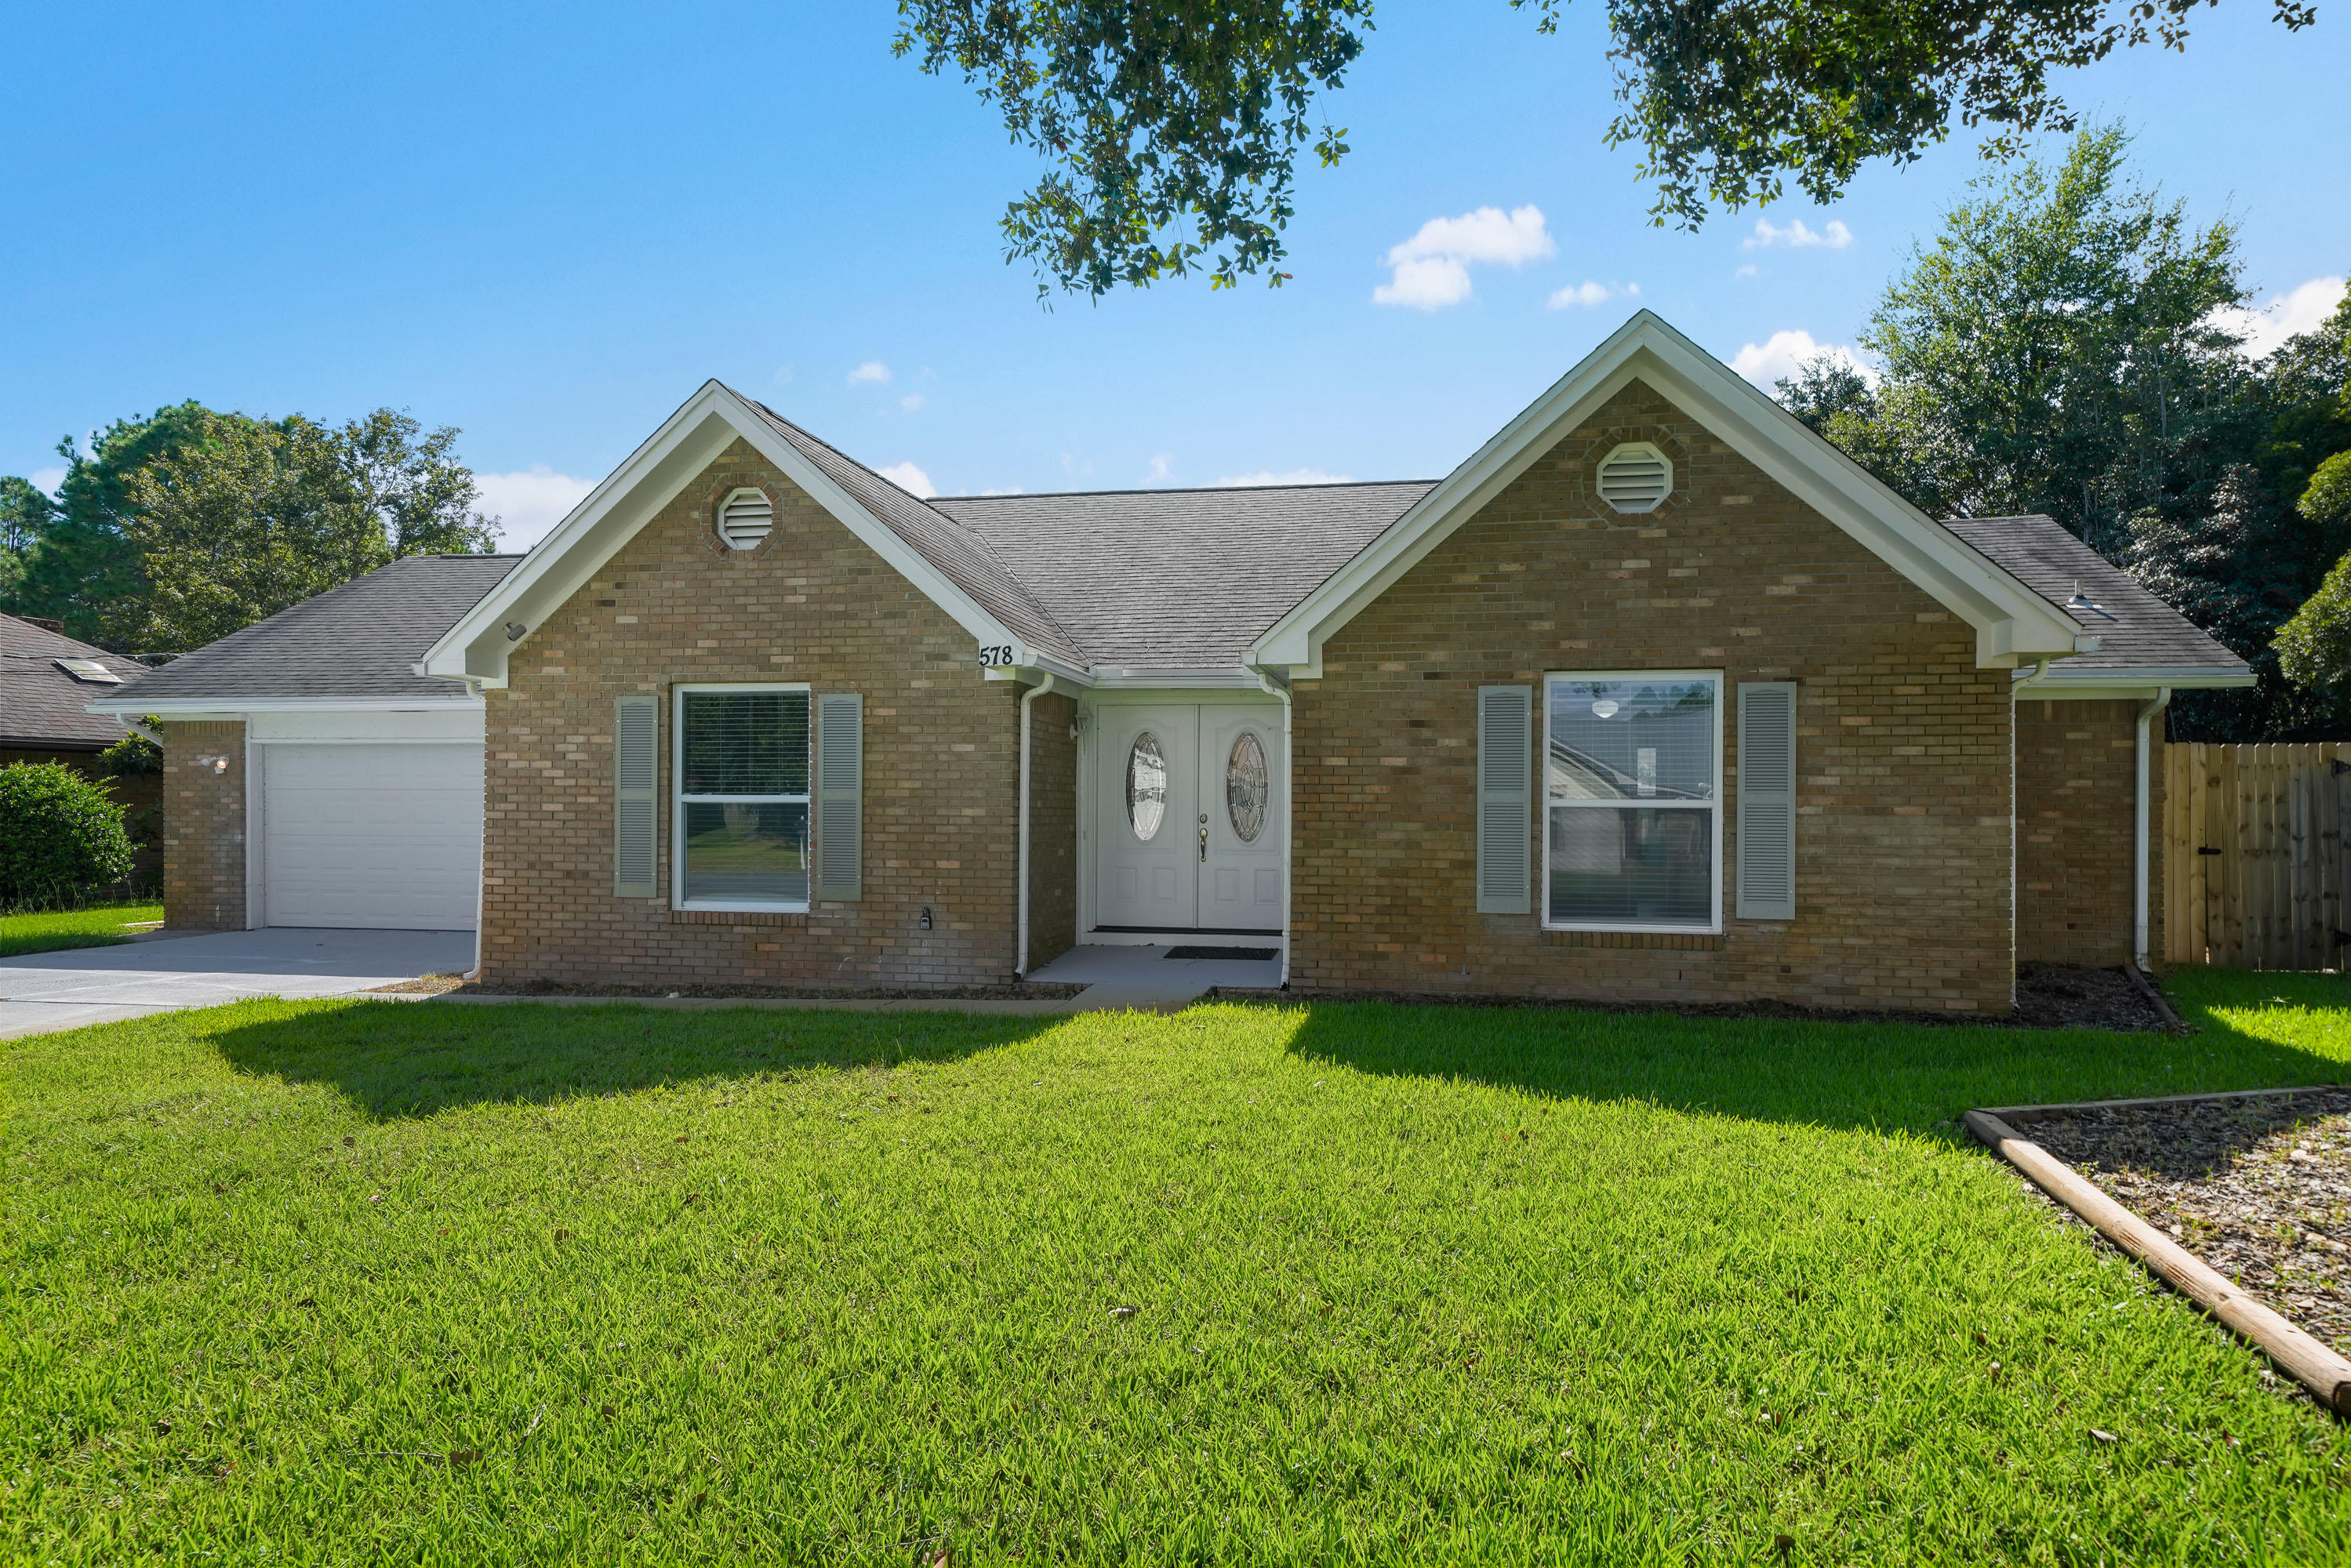 Photo of home for sale at 578 Timberlake, Mary Esther FL